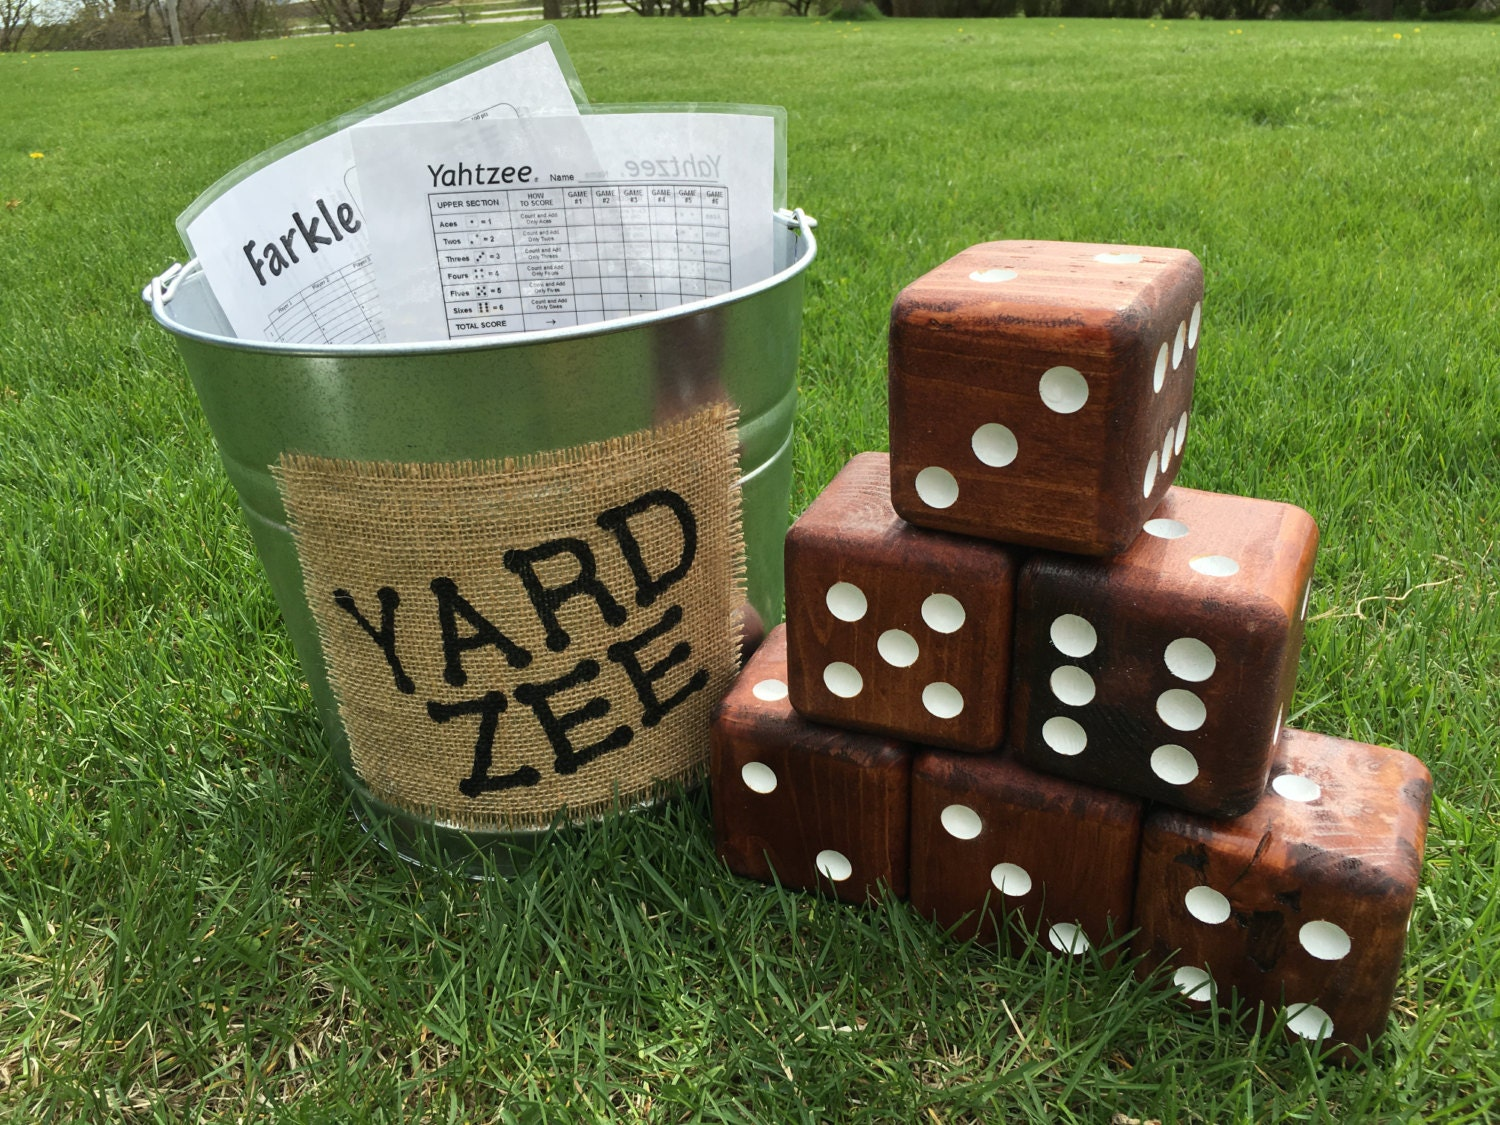 Yard Zee Giant Yard Dice Yahtzee Game Farkle Dice Game Six